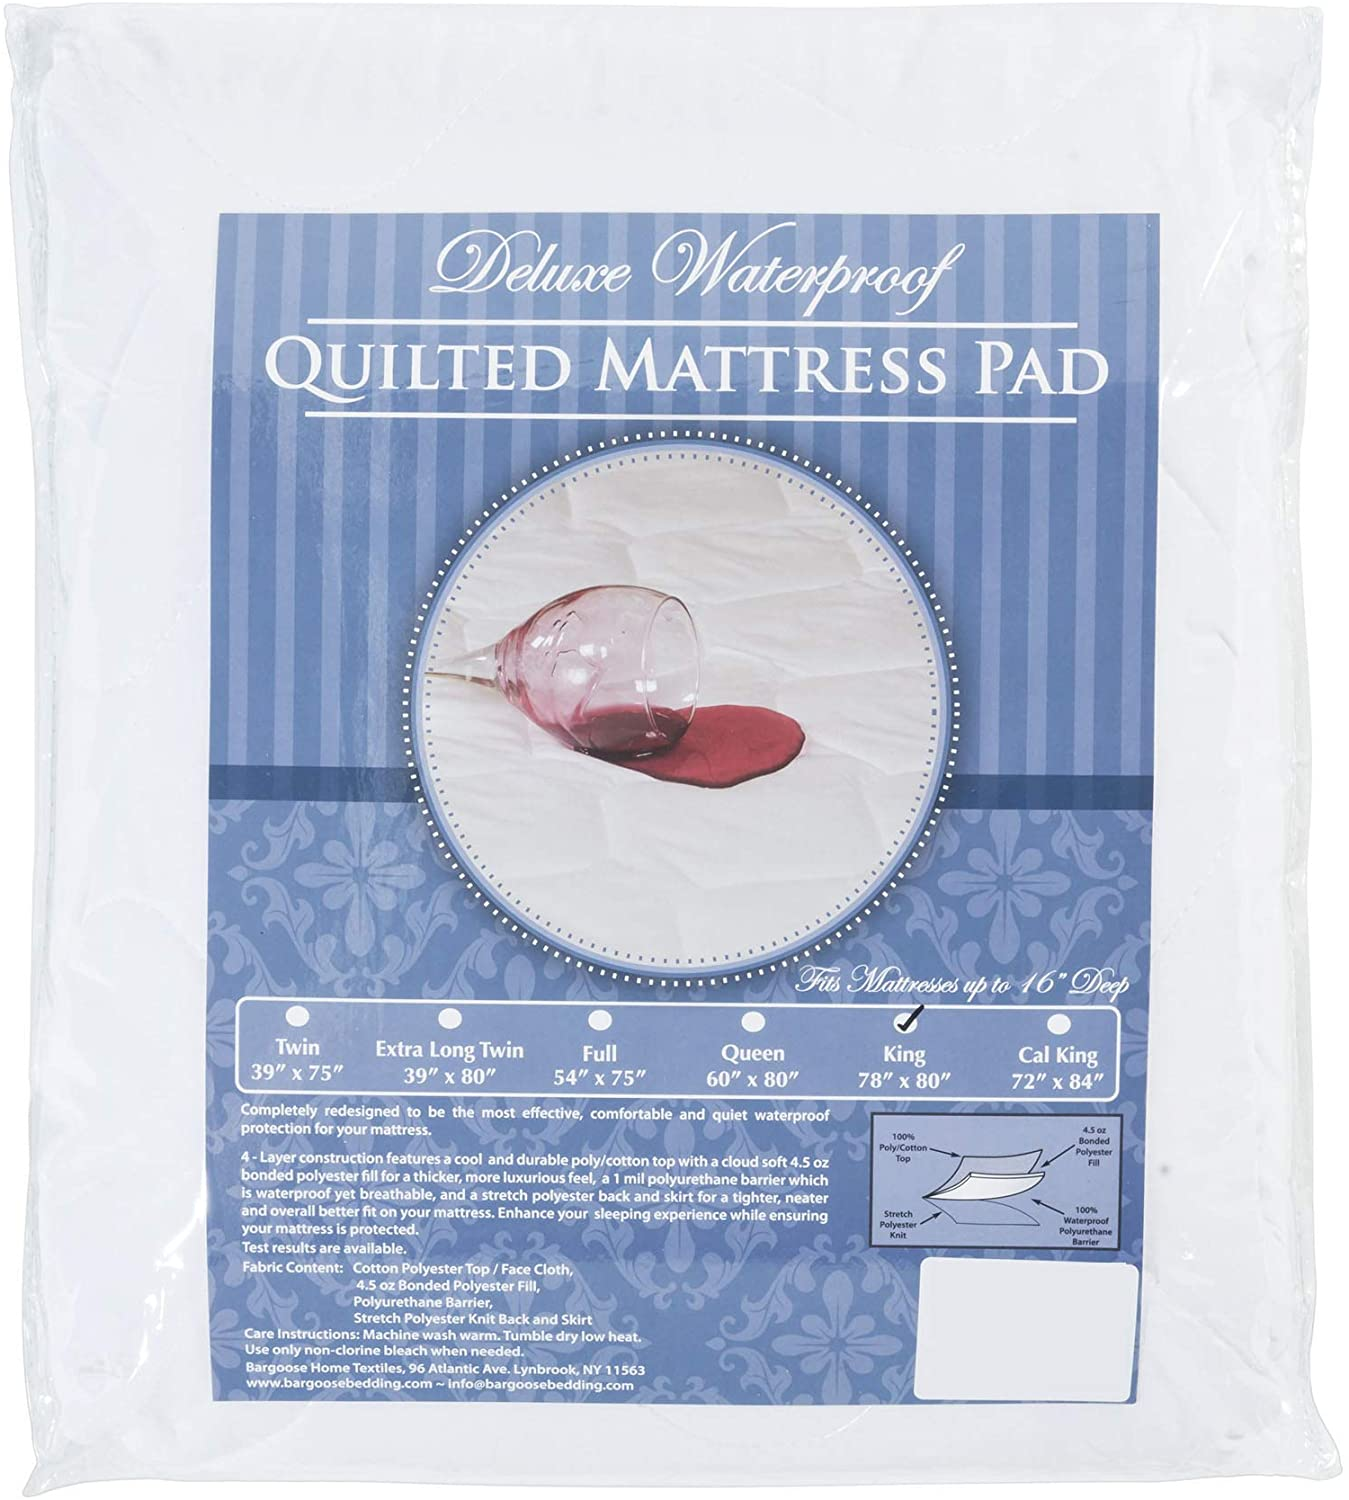 BARGOOSE HOME TEXTILES, INC. Waterproof Mattress Pad, Deluxe Quilted, Fitted Mattress Topper, Breathable, Quiet, Comfortable Allergen Barrier, Stretch up to 16 Inches, White, Twin XL